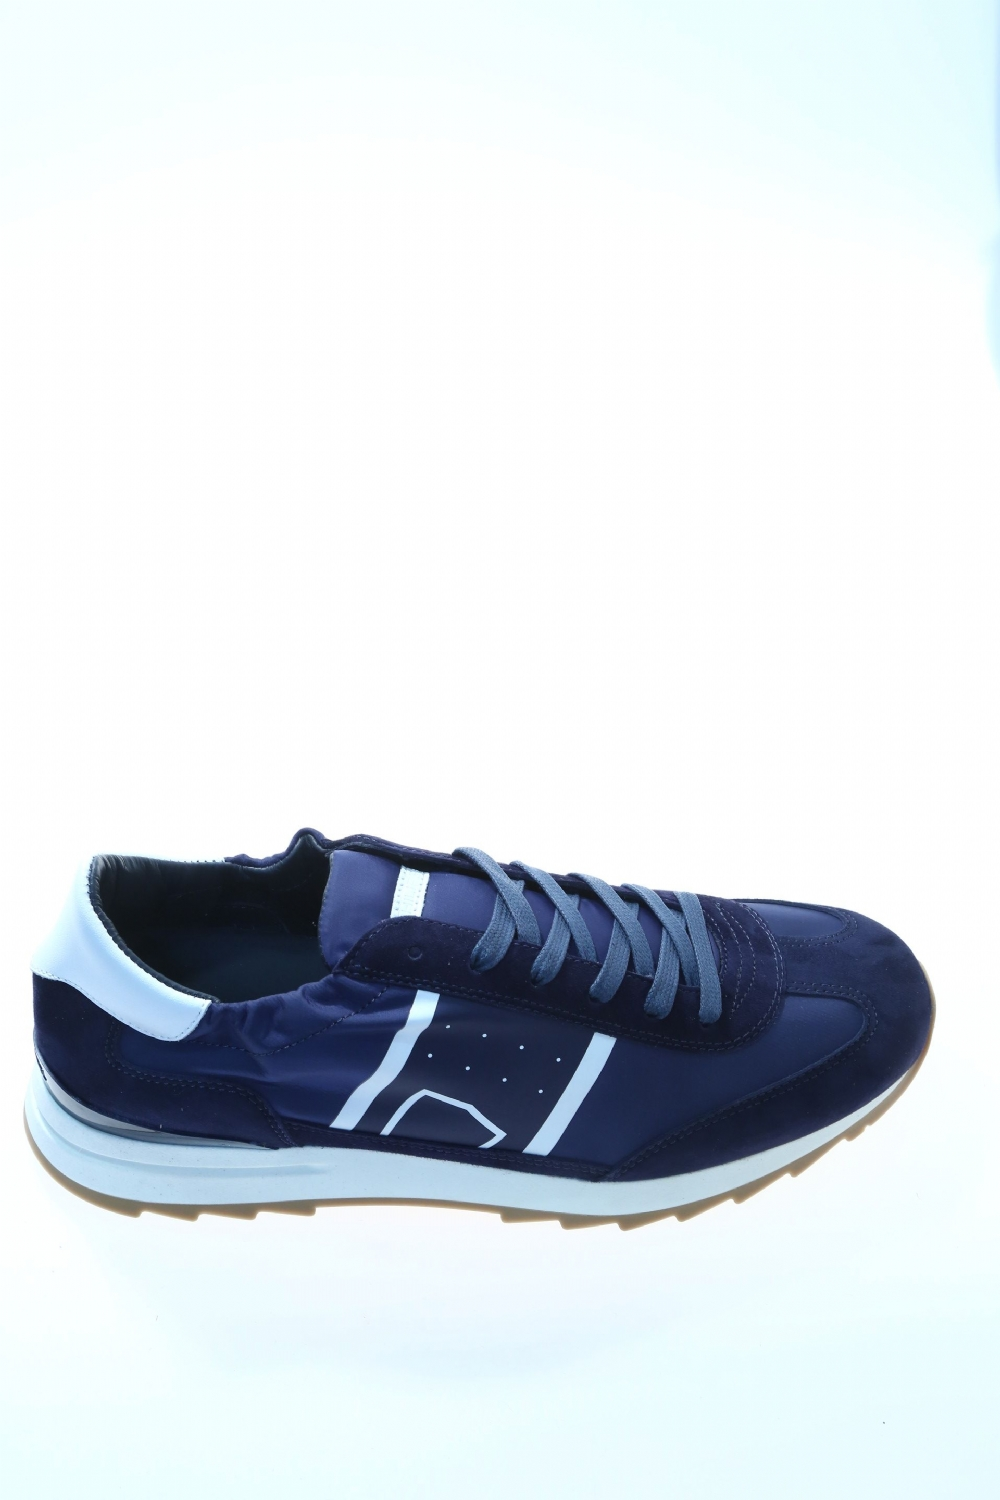 huge selection of 4b887 3f1b9 Uomo-Sneaker-PHILIPPE-MODEL-Blu-Scarpa 98788088.jpg